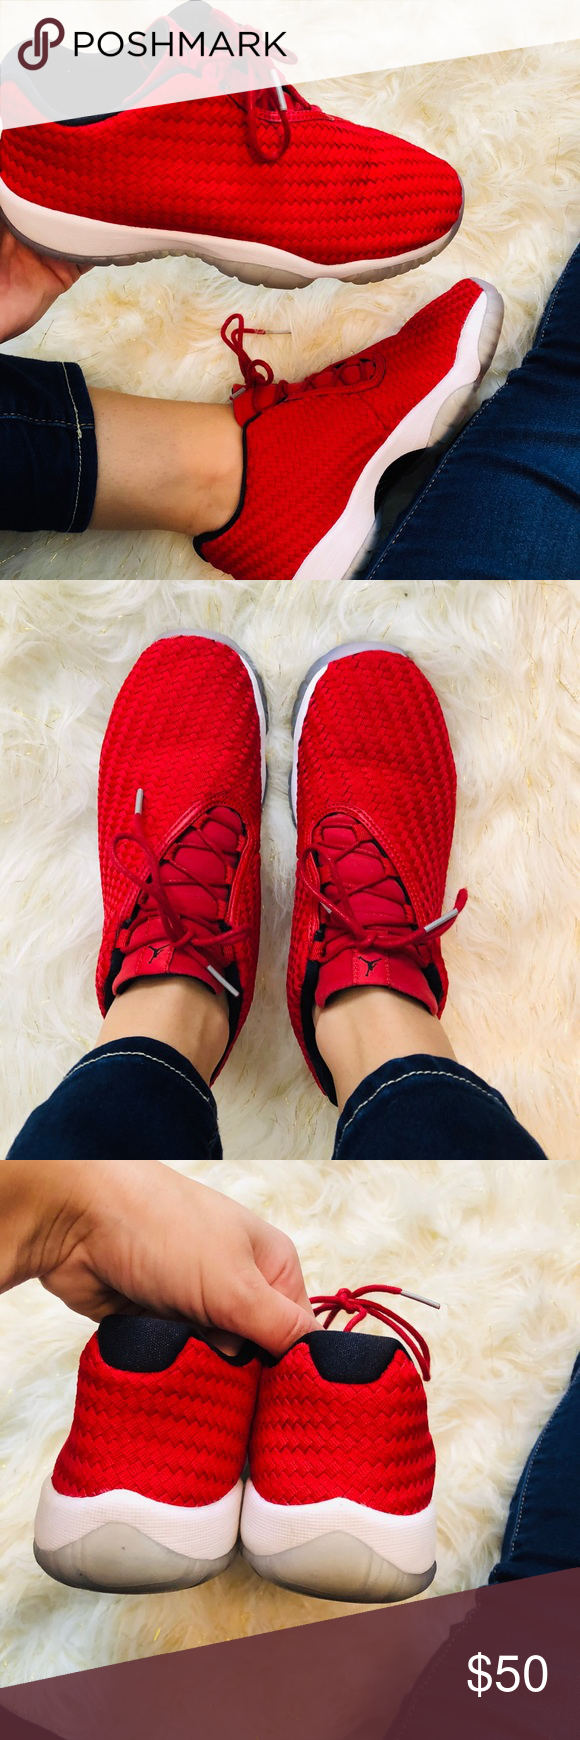 a50ffd3167b Jordan Future Low - Red Jordan Futures in Red White Great condition Size  6  Youth  6 Men s  7.5 Women s Note  I wear an 8 in women s and these fit  perfectly ...